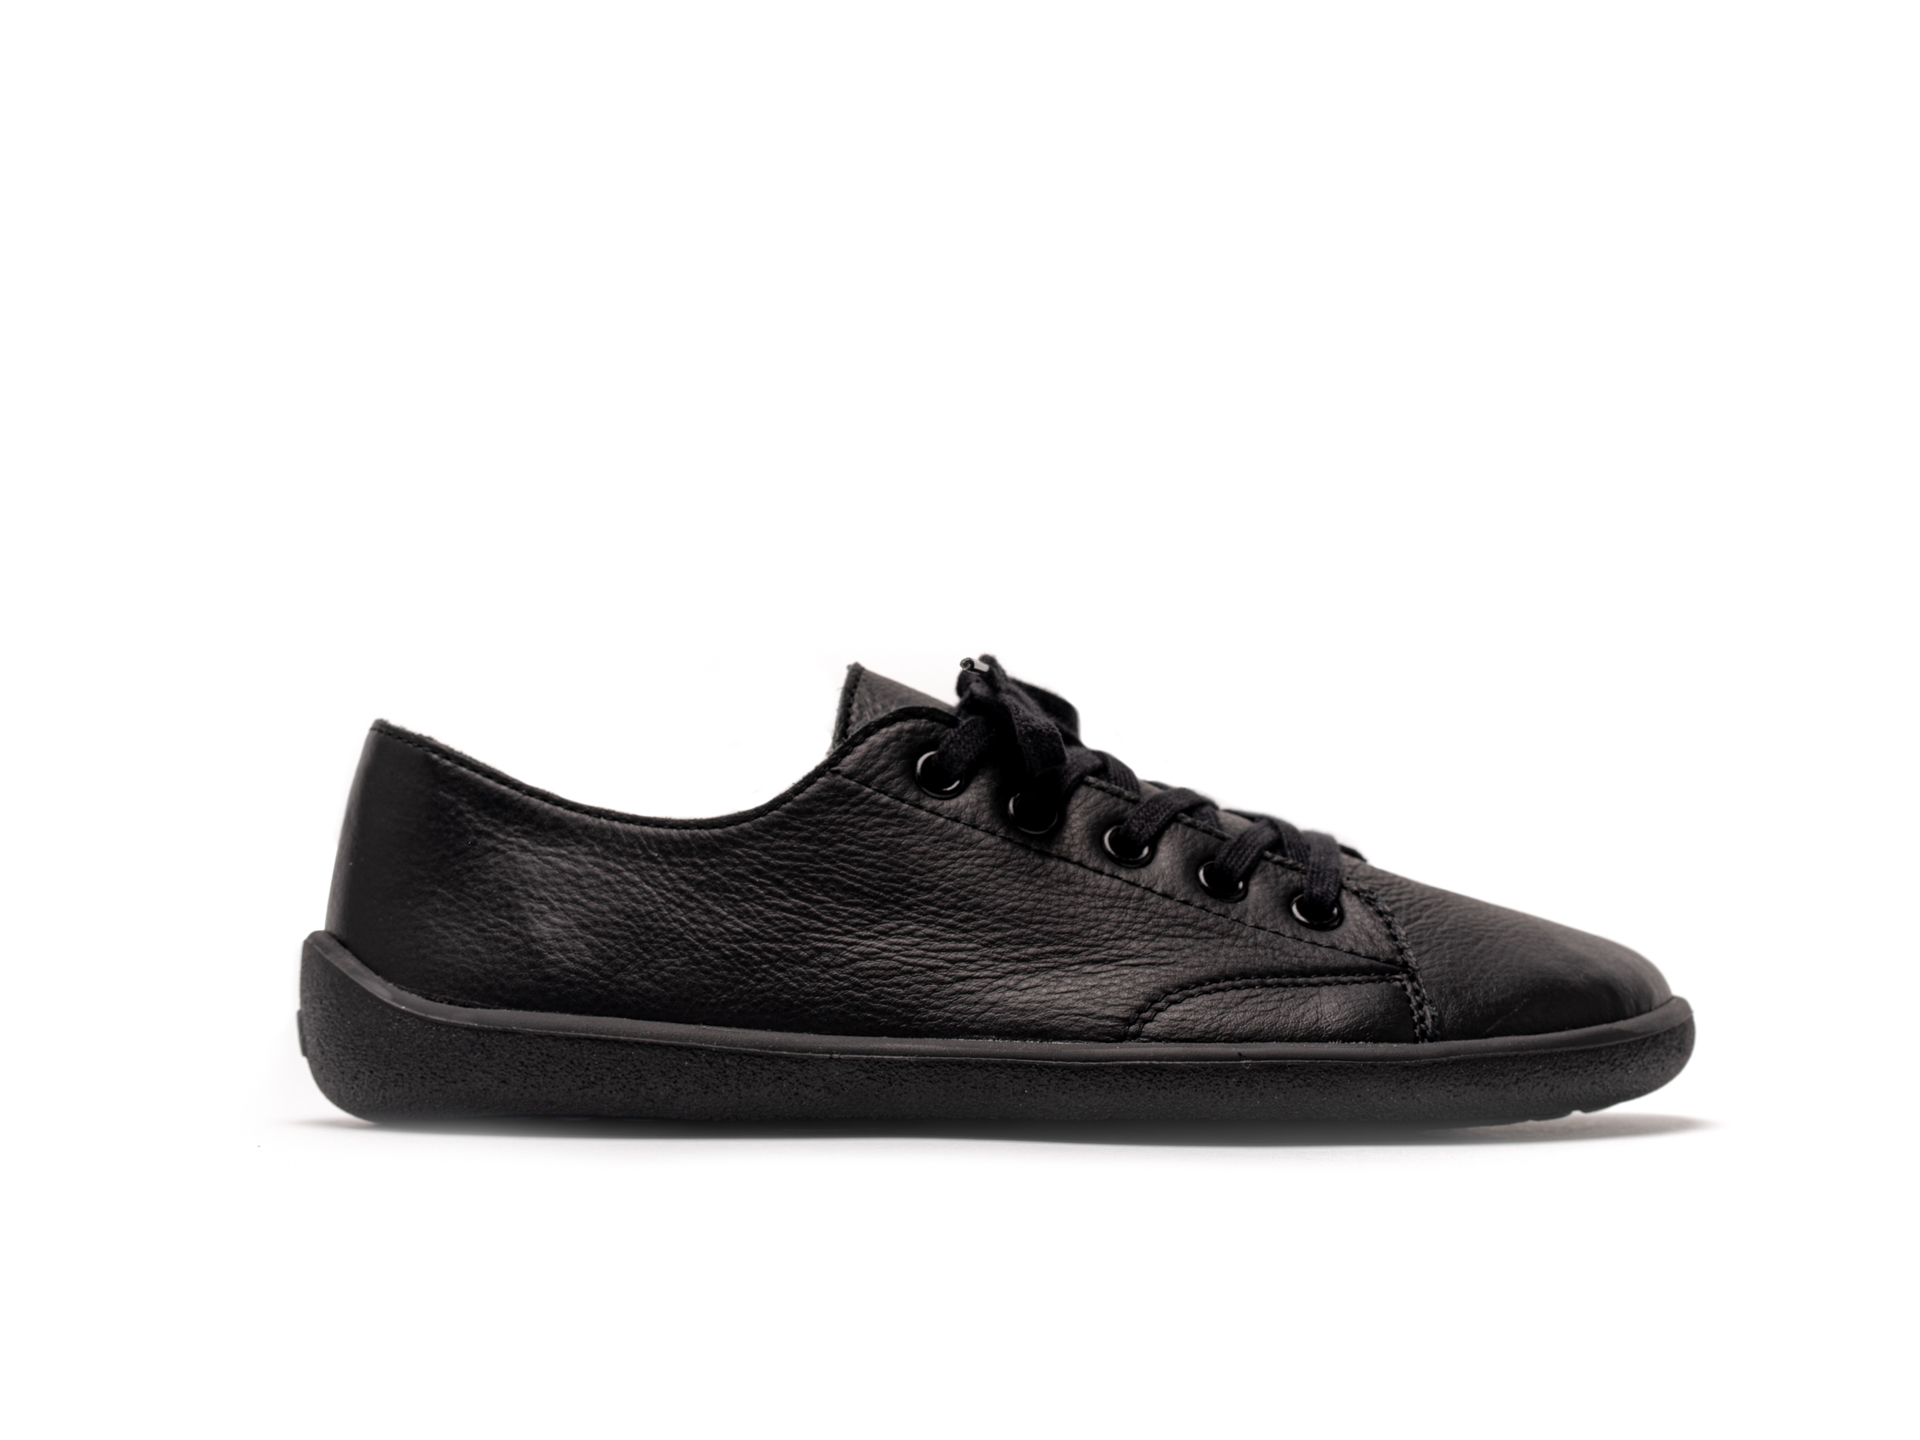 Barefoot Sneakers - Be Lenka Prime - Black 40